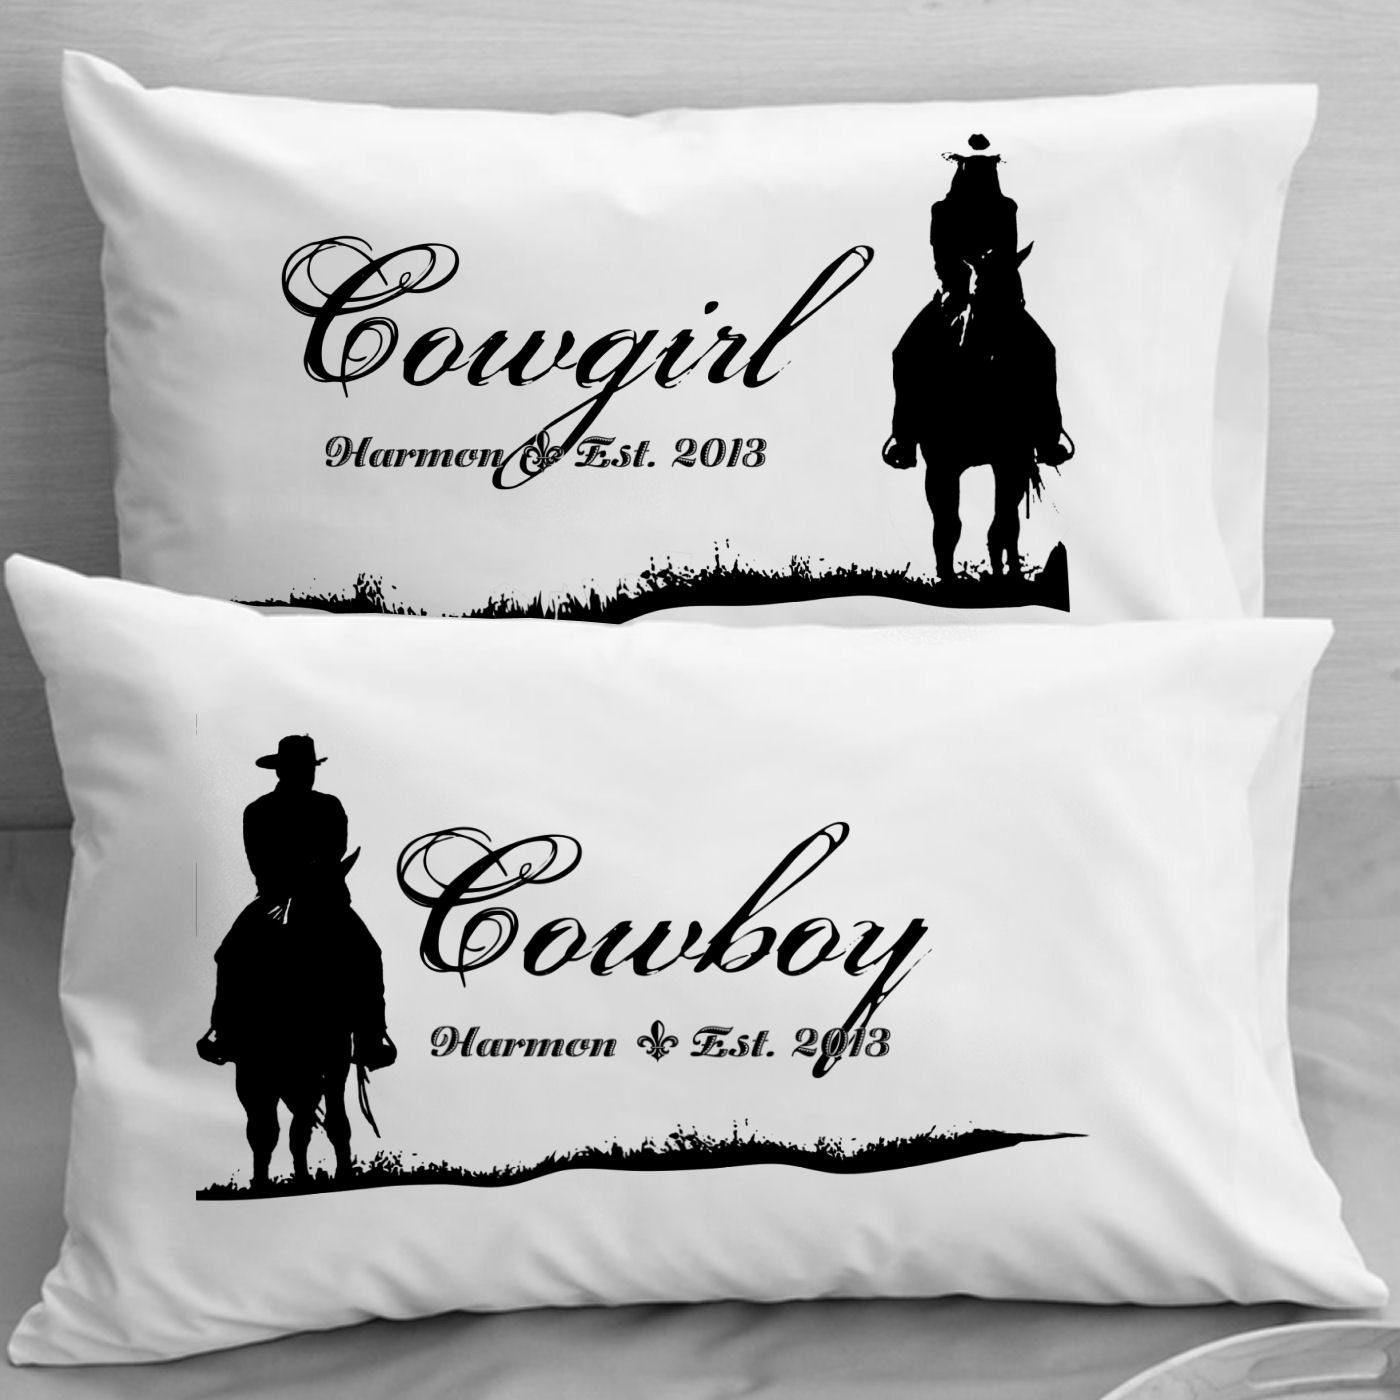 Personalized Cowboy Cowgirl Pillow Cases Pillowcases By